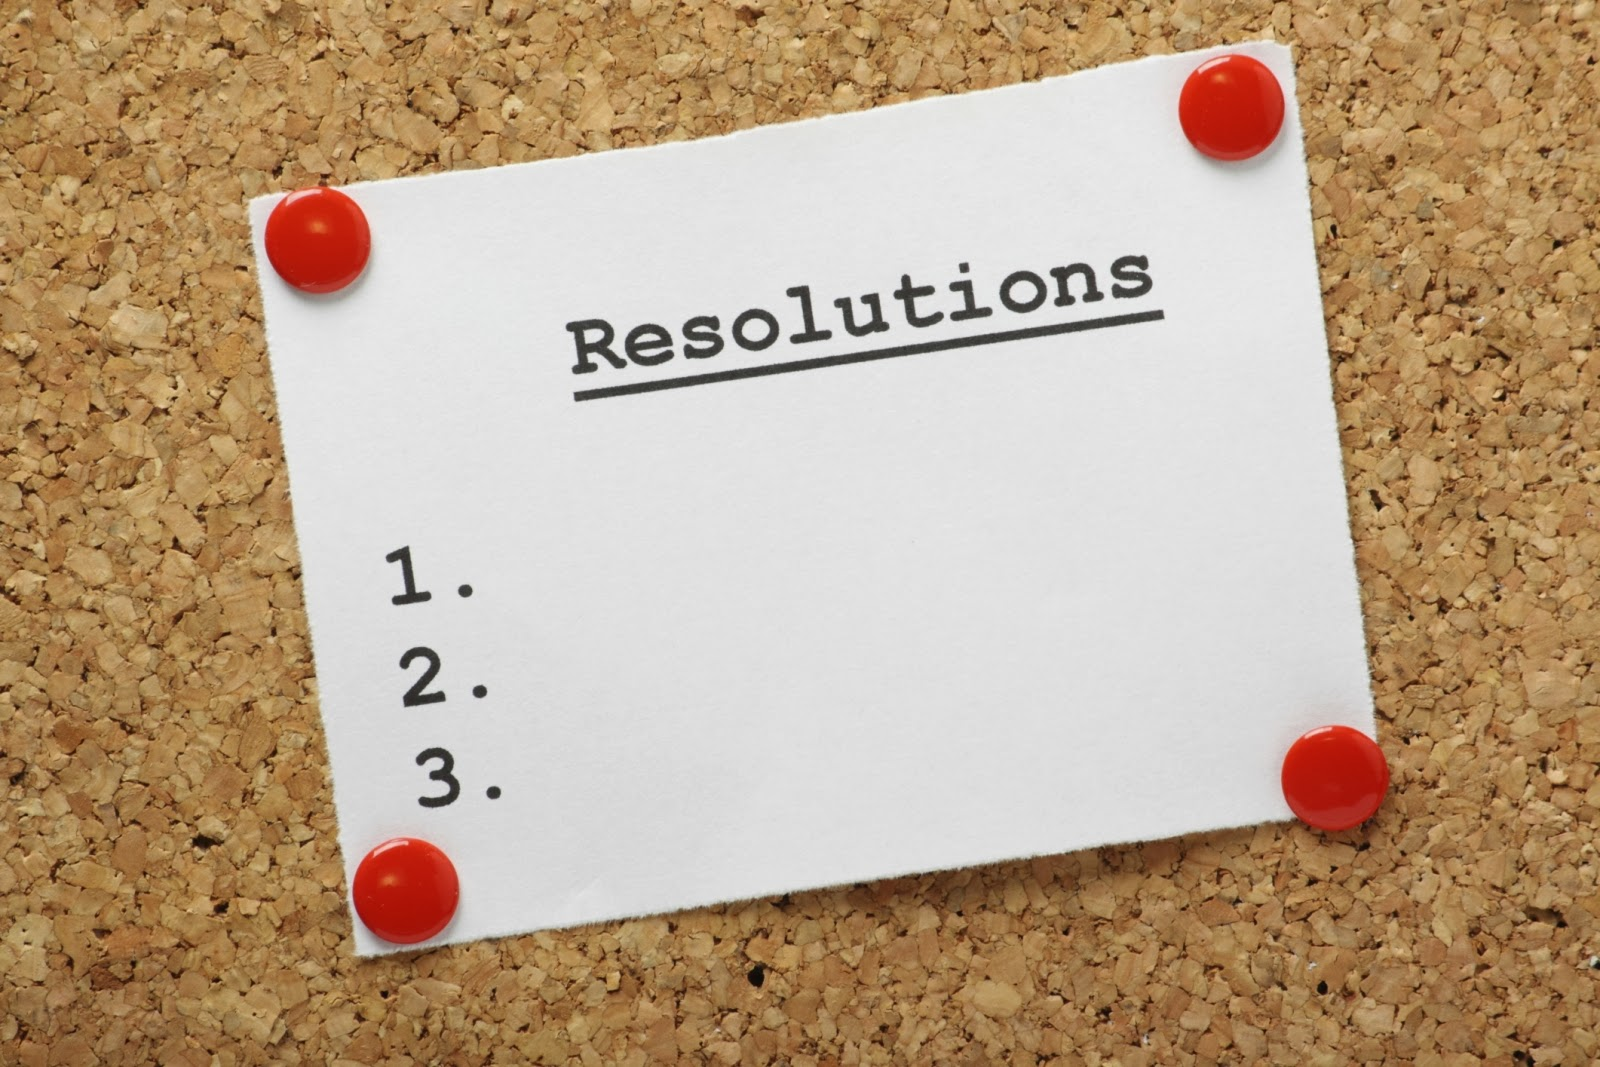 The four new years resolutions every homeowner should make many new years resolutions end up losing their meaning over the years but as a homeowner you owe it to yourself to make some serious resolutions this year solutioingenieria Images